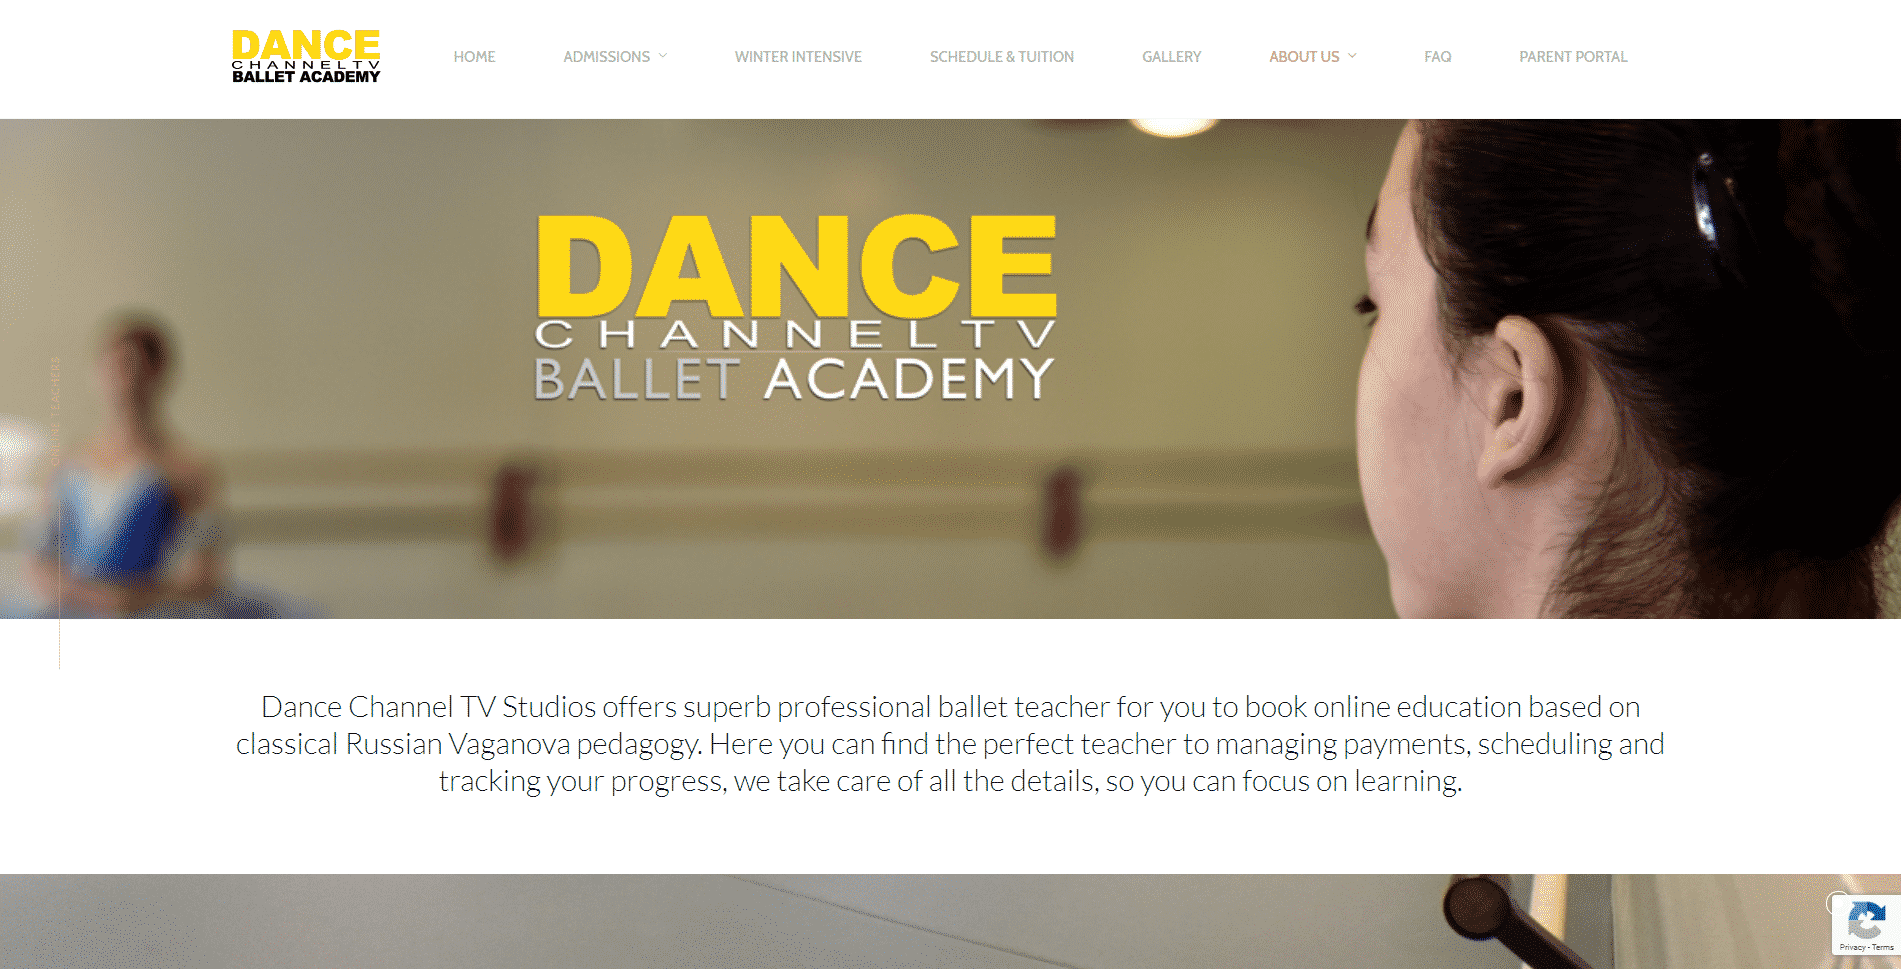 DANCE CHANNEL TV BALLET ACADEMY